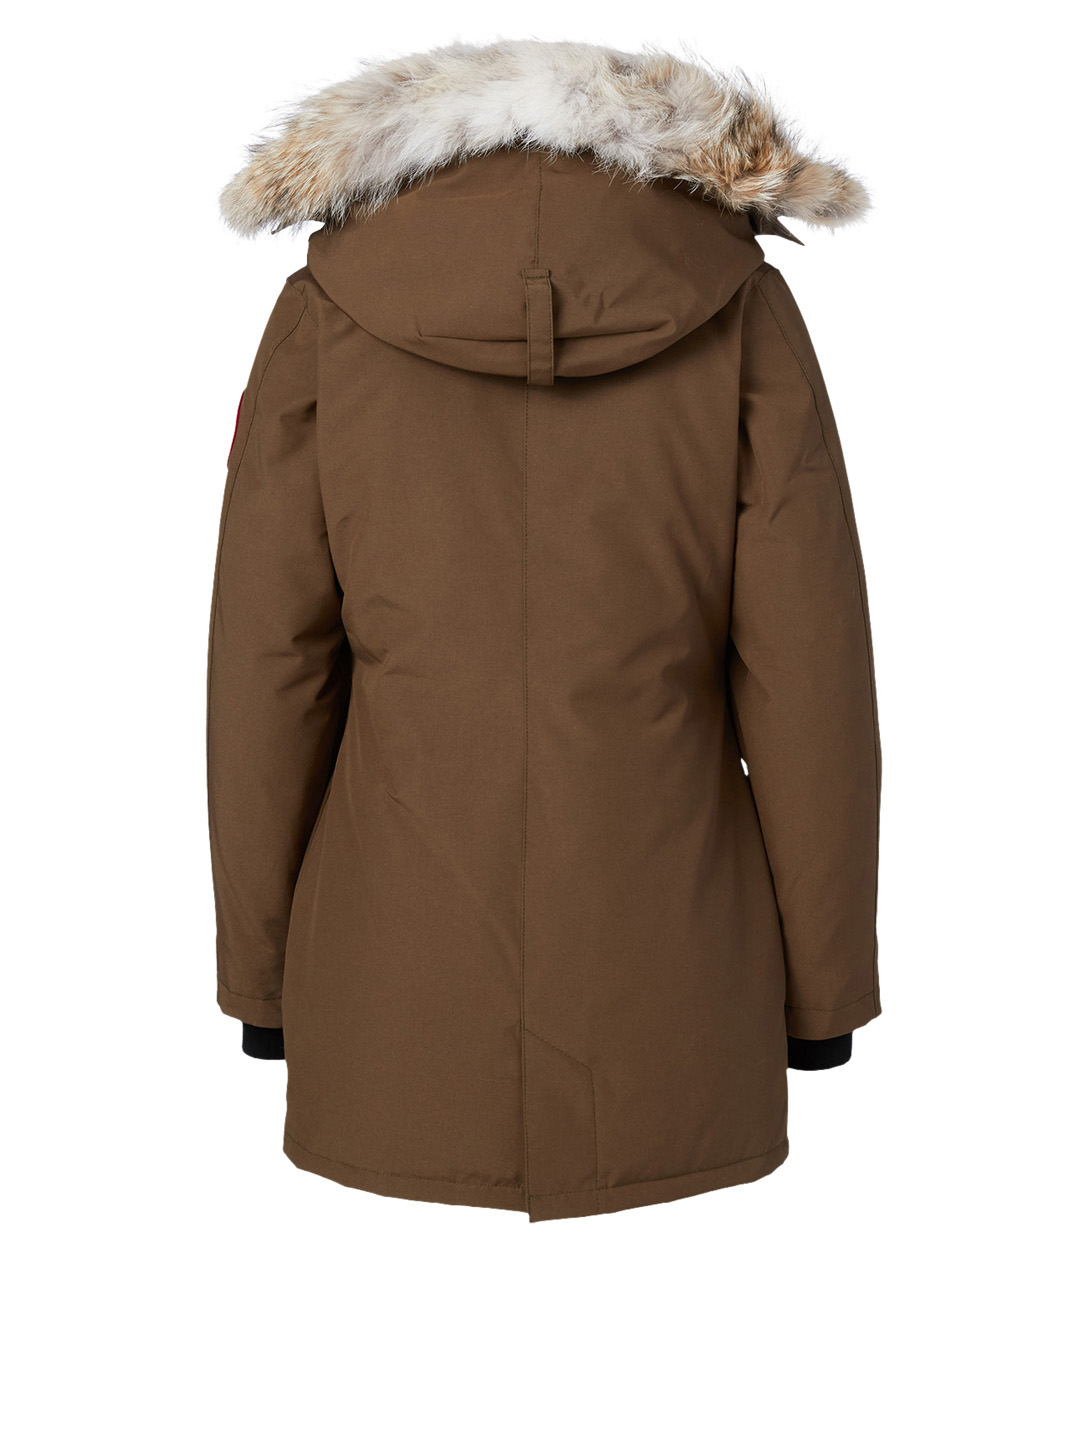 CANADA GOOSE Victoria Down Parka With Fur Hood - Fusion Fit Women's Green